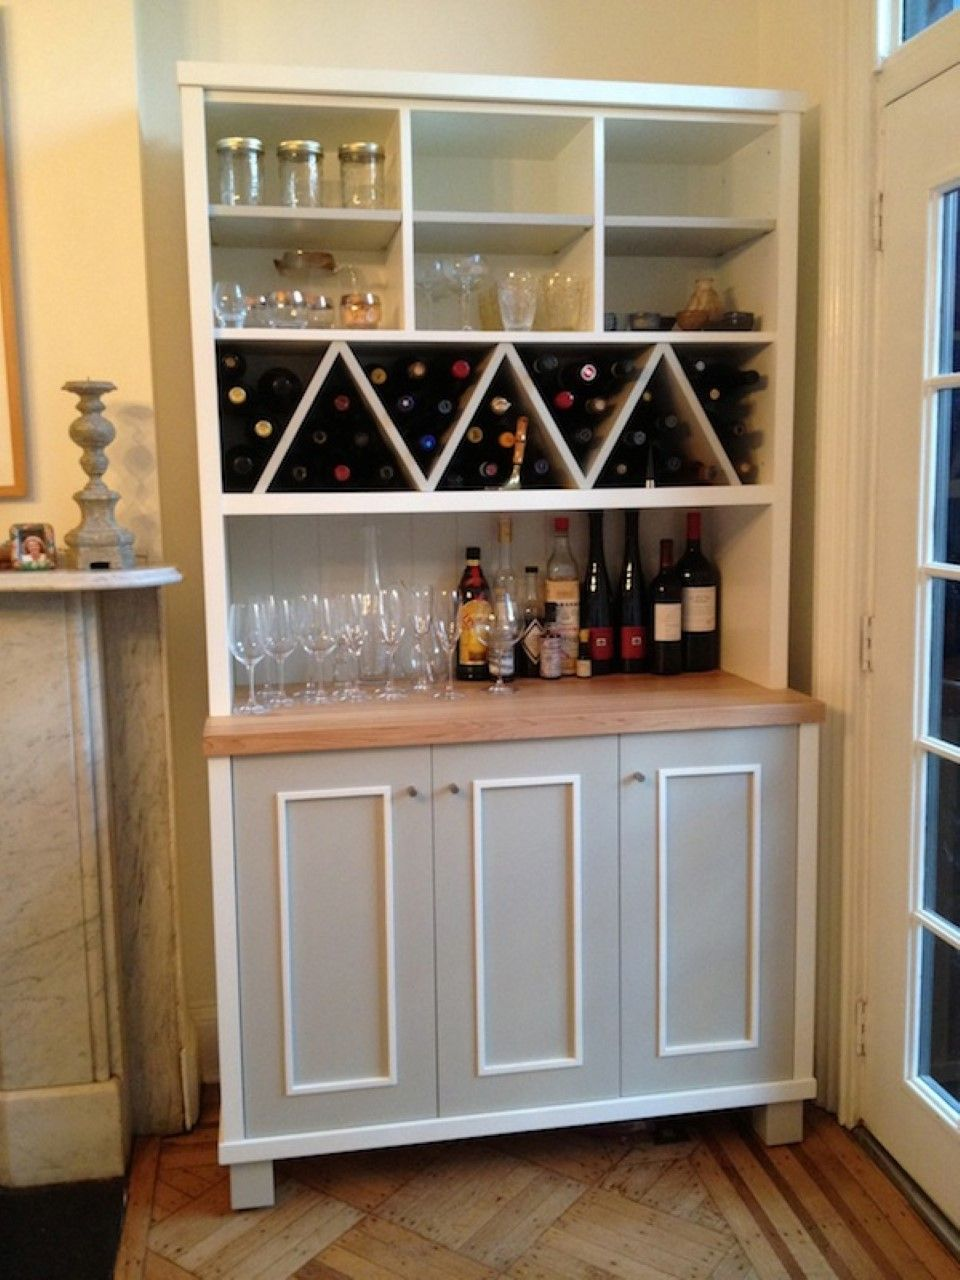 Zigzag Shaped Wine Racks With Multi Purposes Kitchen Wall Storage Cabinet  Design Ideas And Parquet Floor Part 51